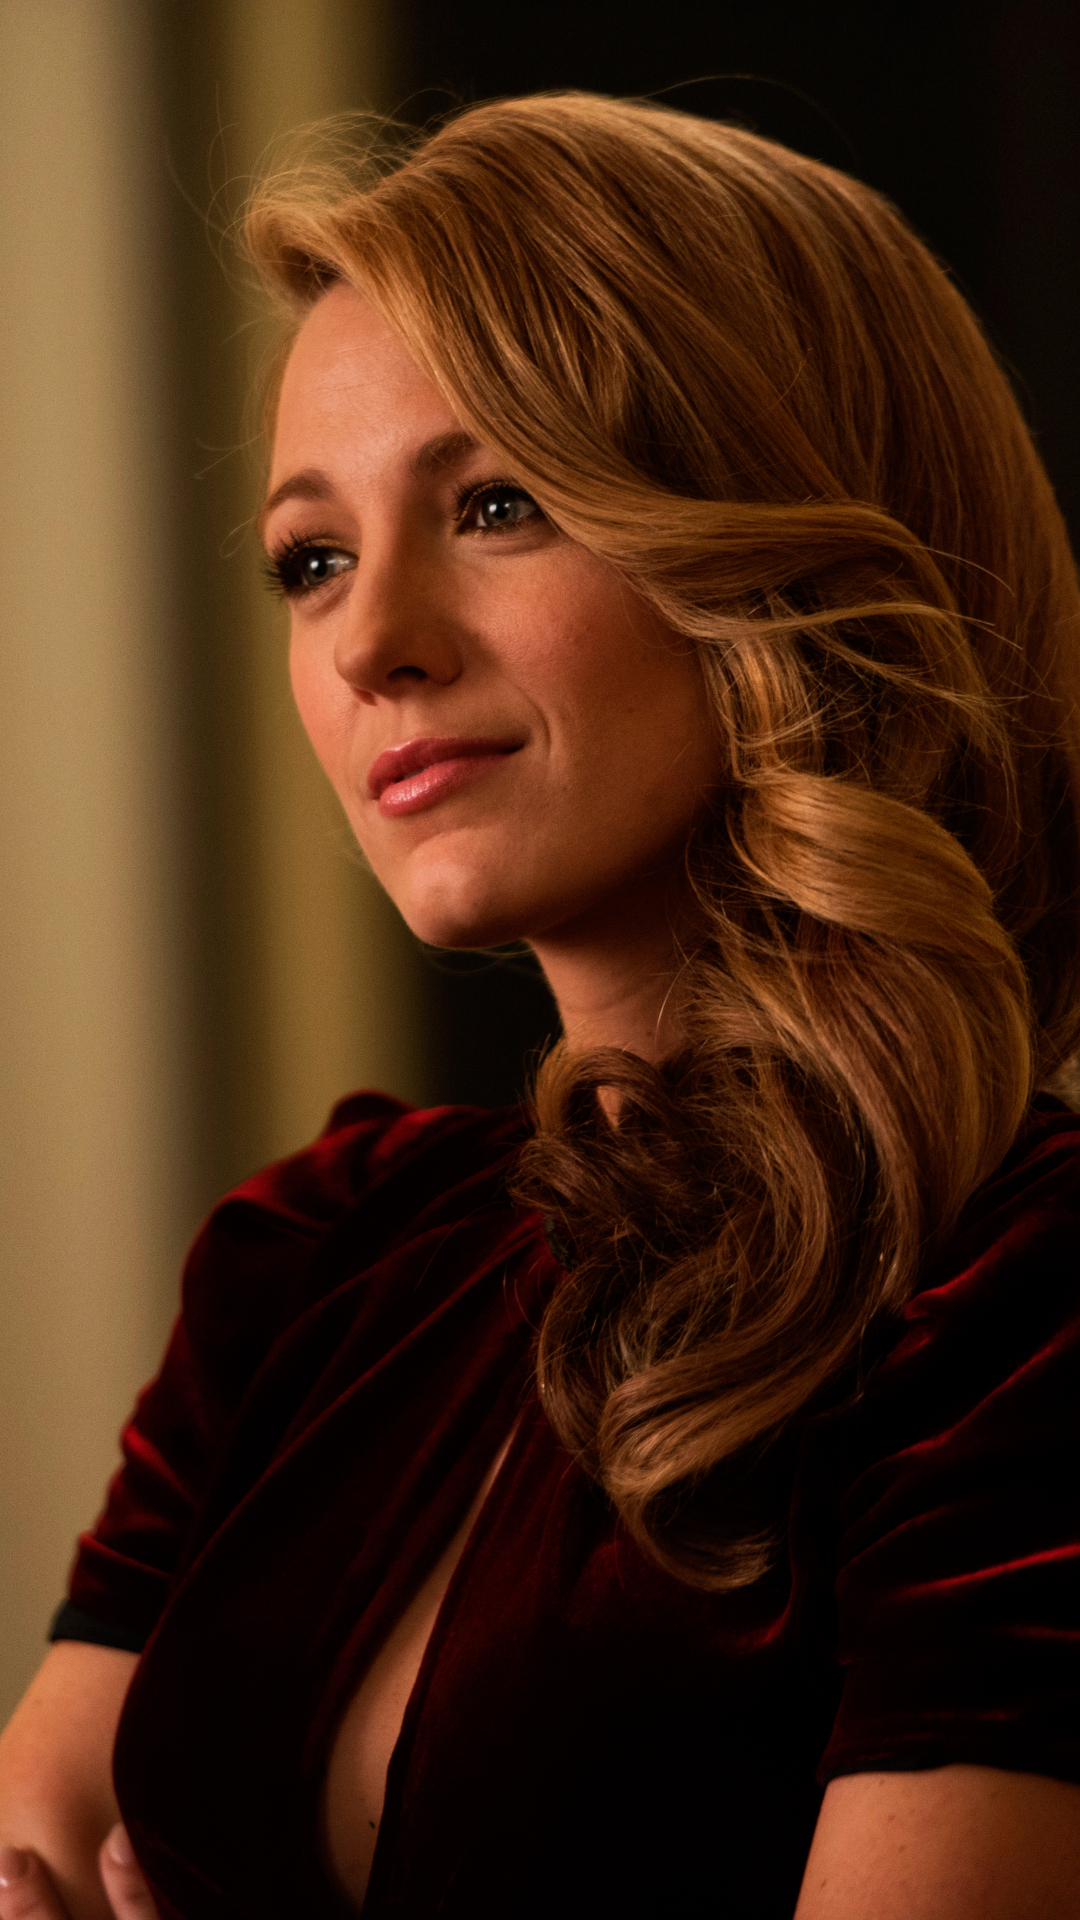 47 Blake Lively Apple Iphone 6 750x1334 Wallpapers Mobile Abyss